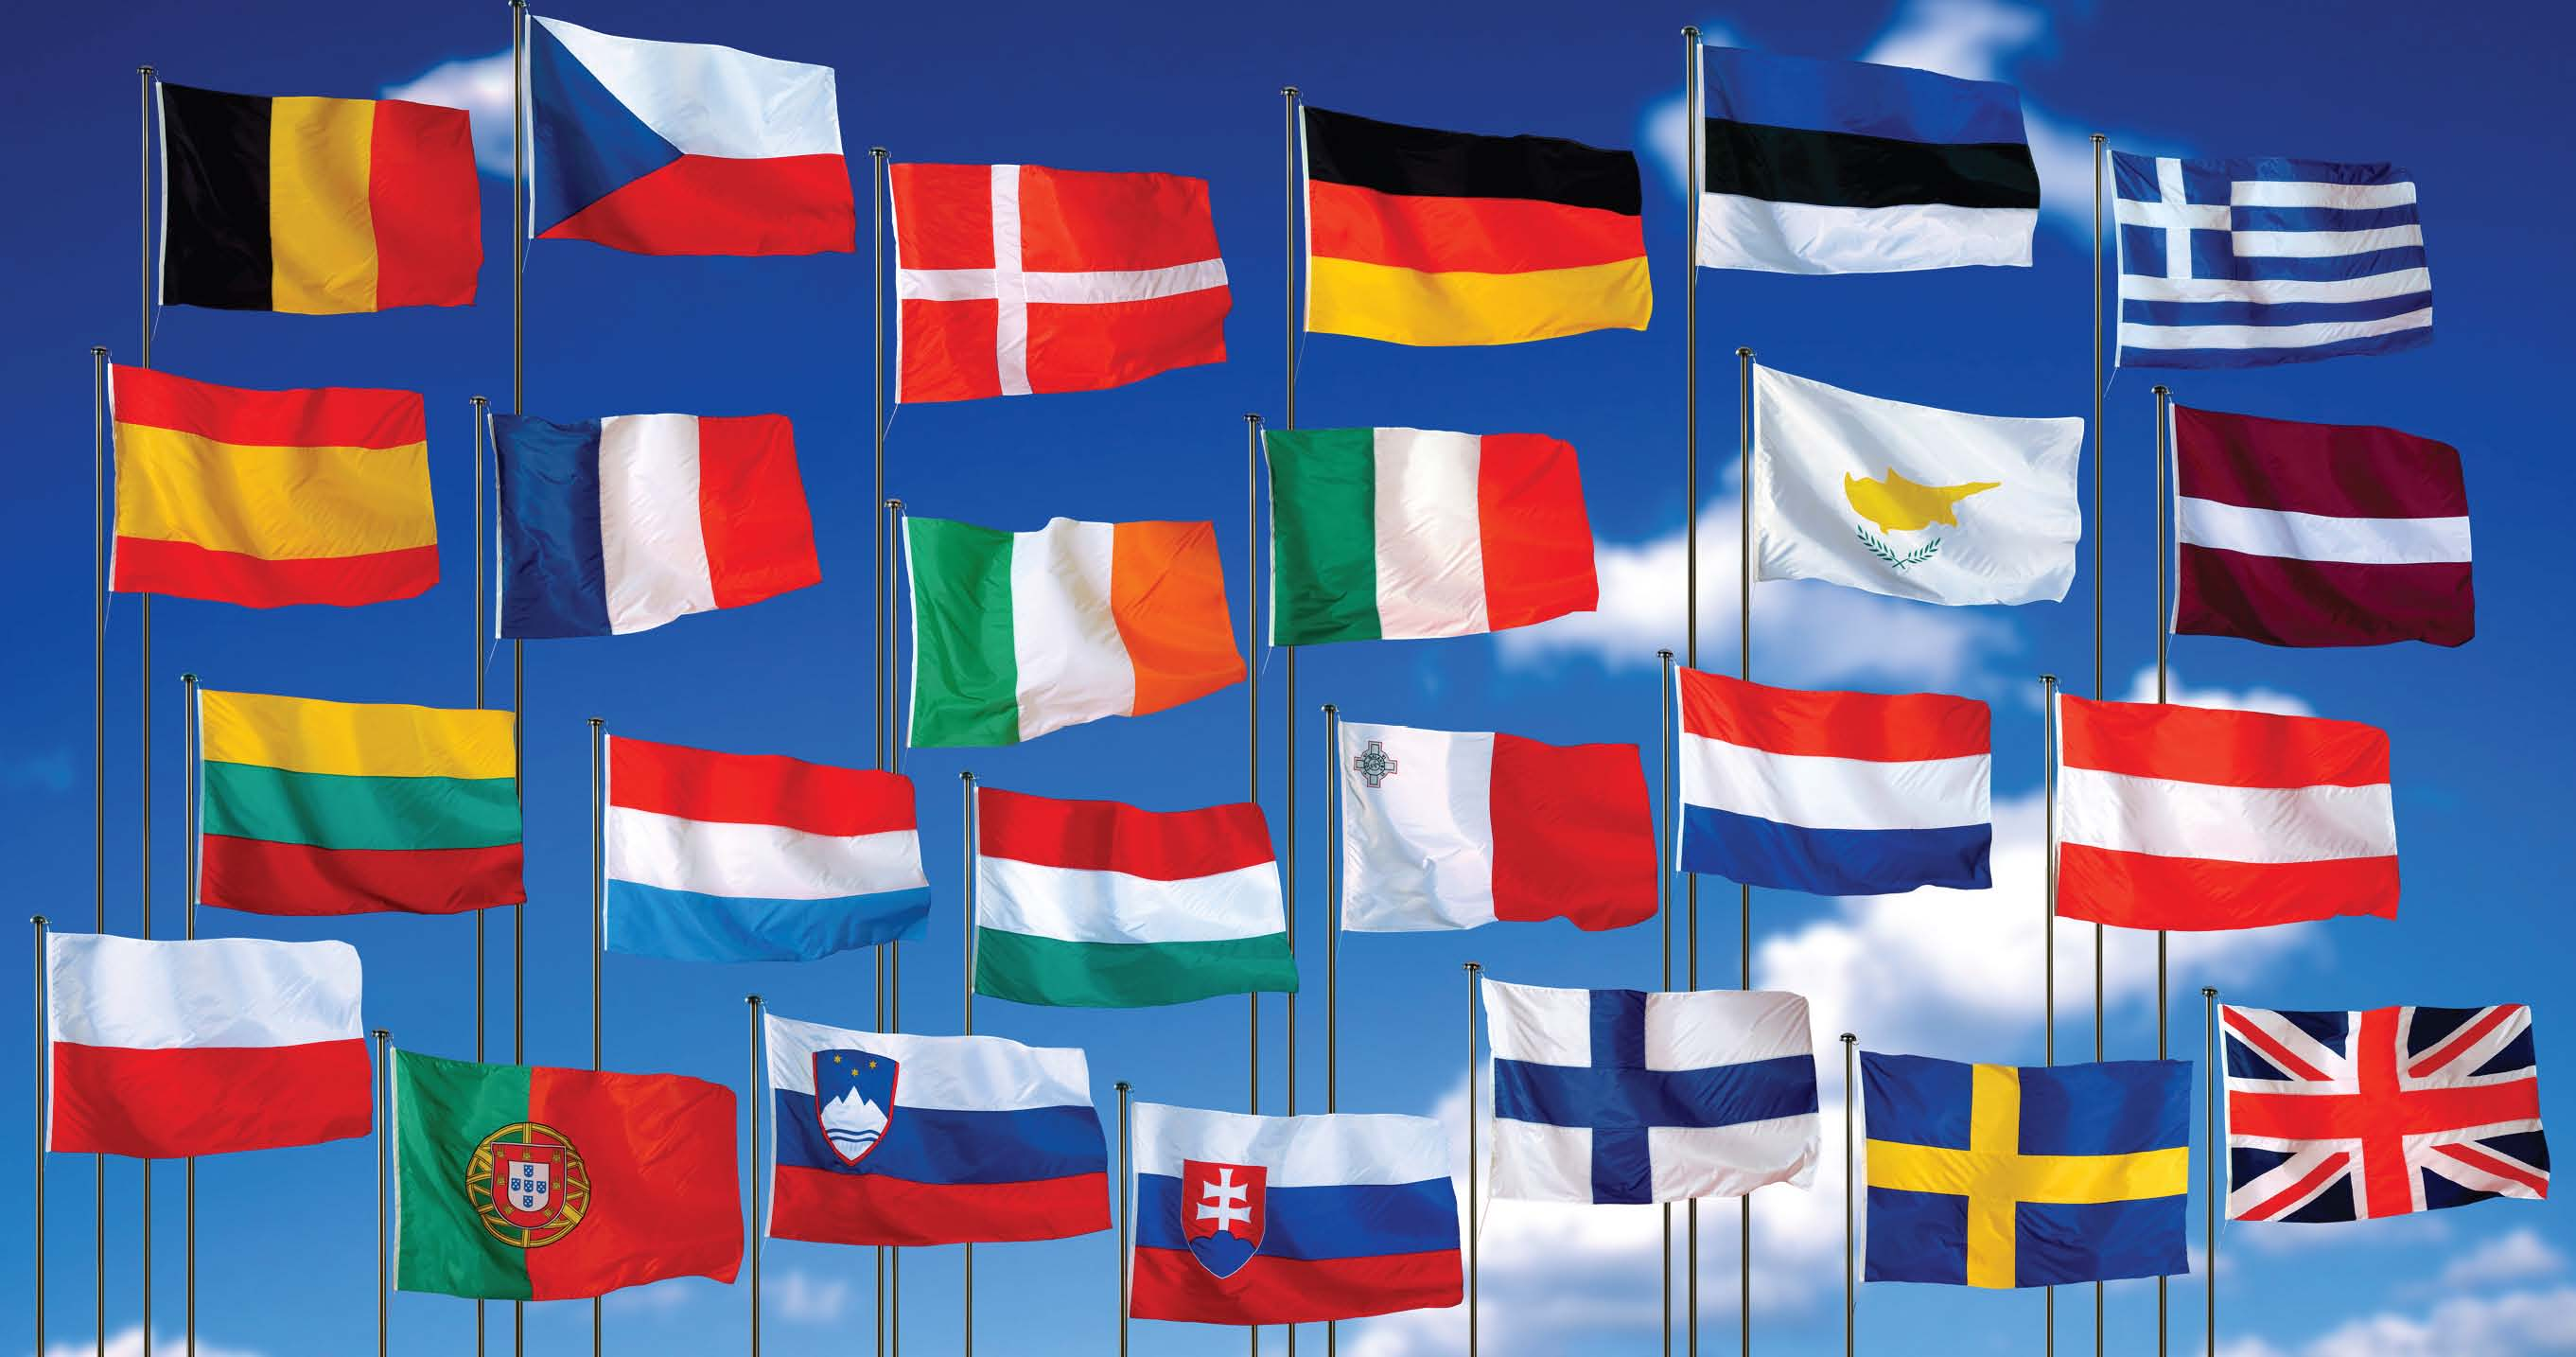 The flags of the European Union